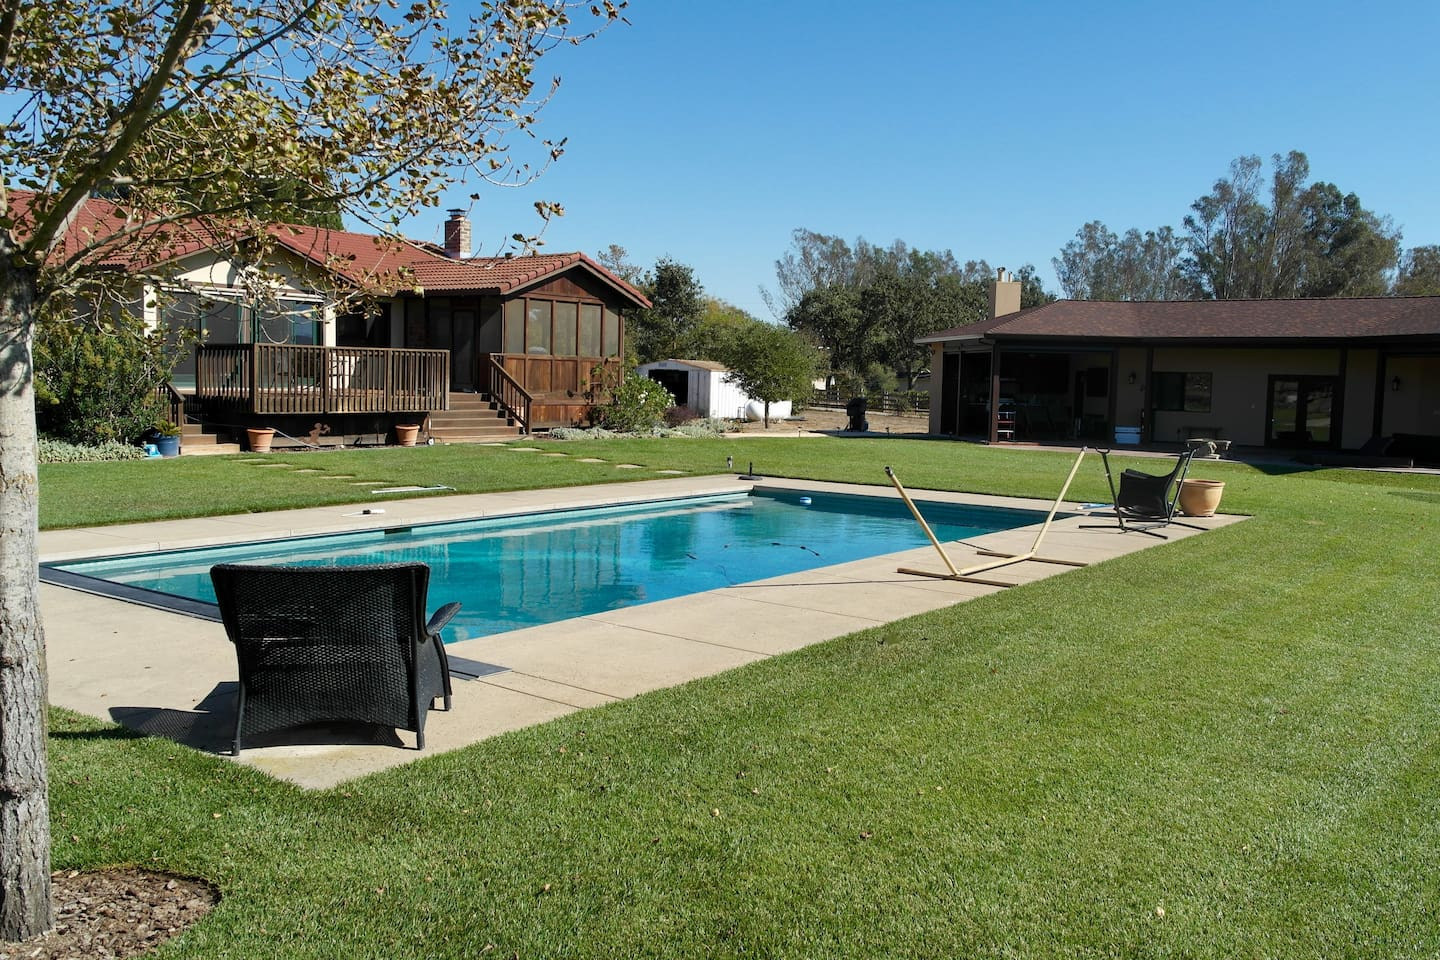 sonoma ranch pool u0026 baseball field houses for rent in sonoma